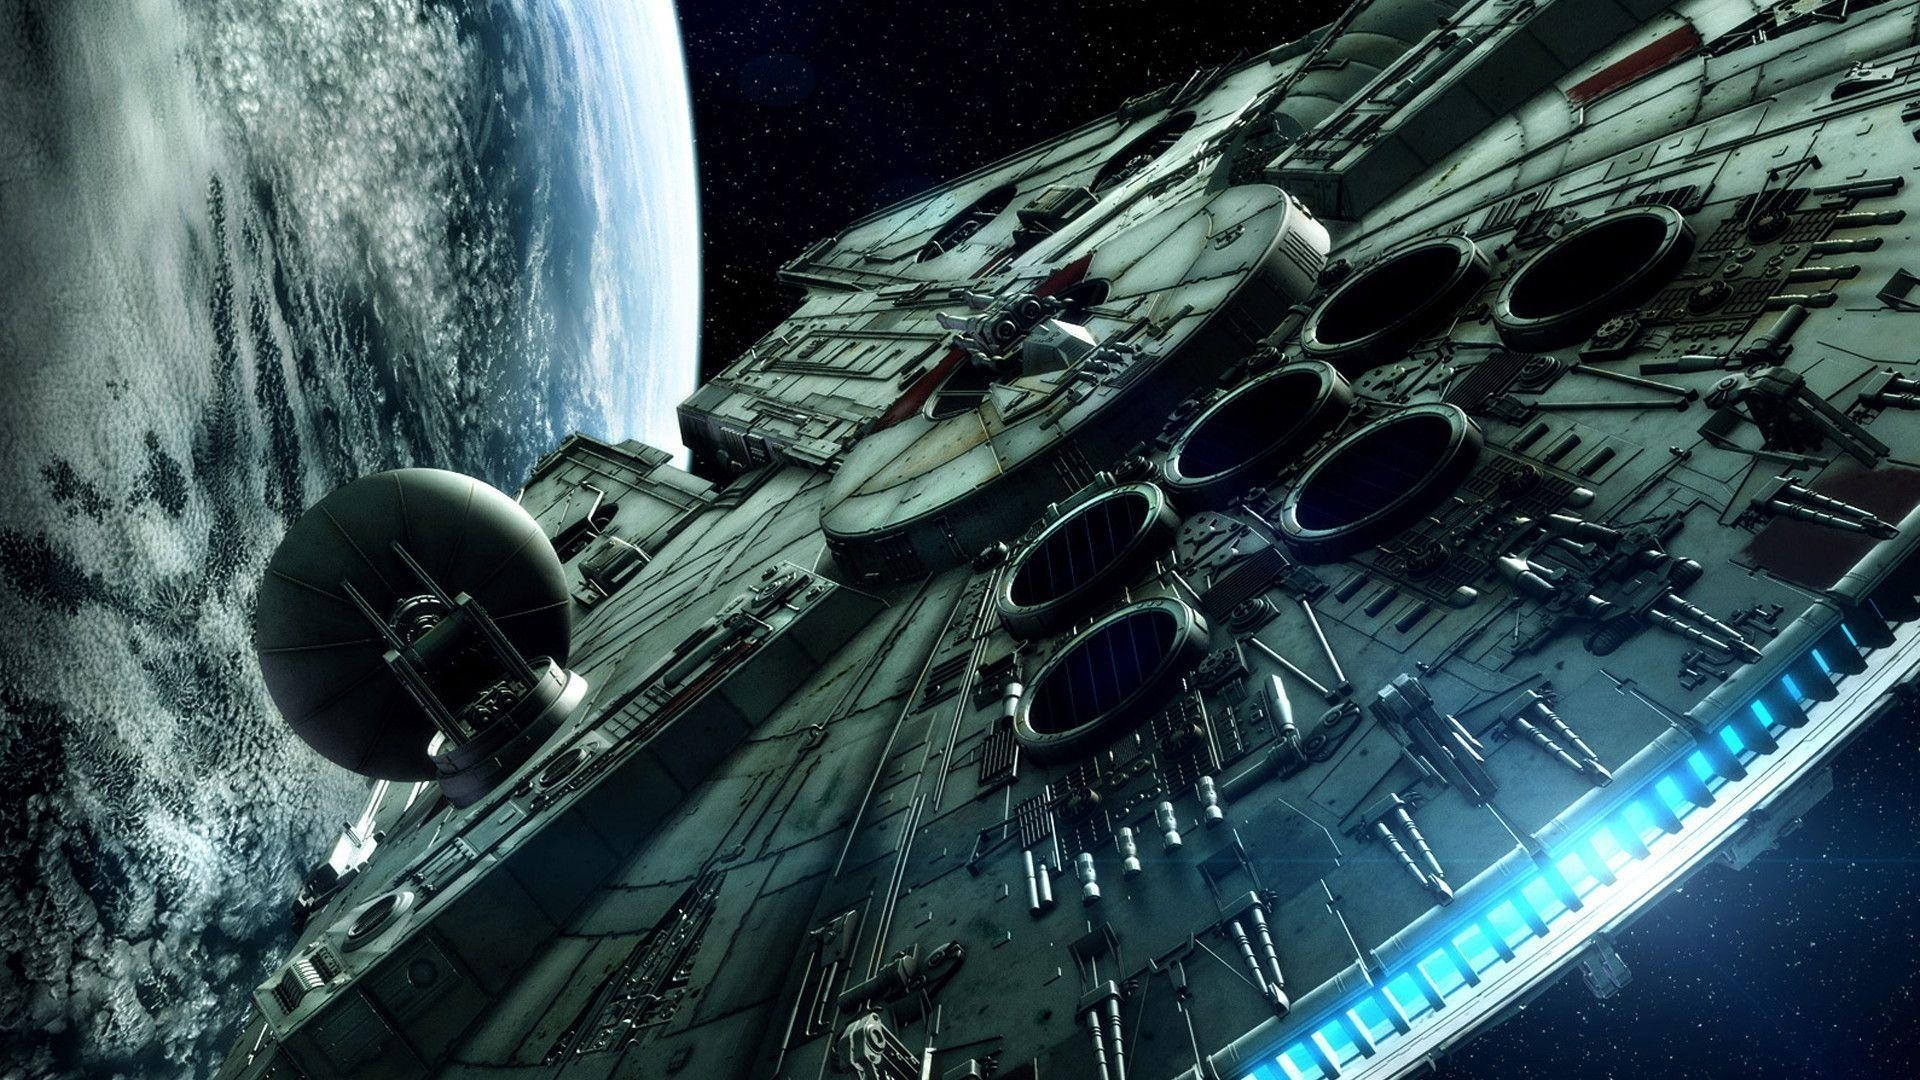 10 Latest Star Wars Full Hd Wallpaper FULL HD 1080p For PC Background